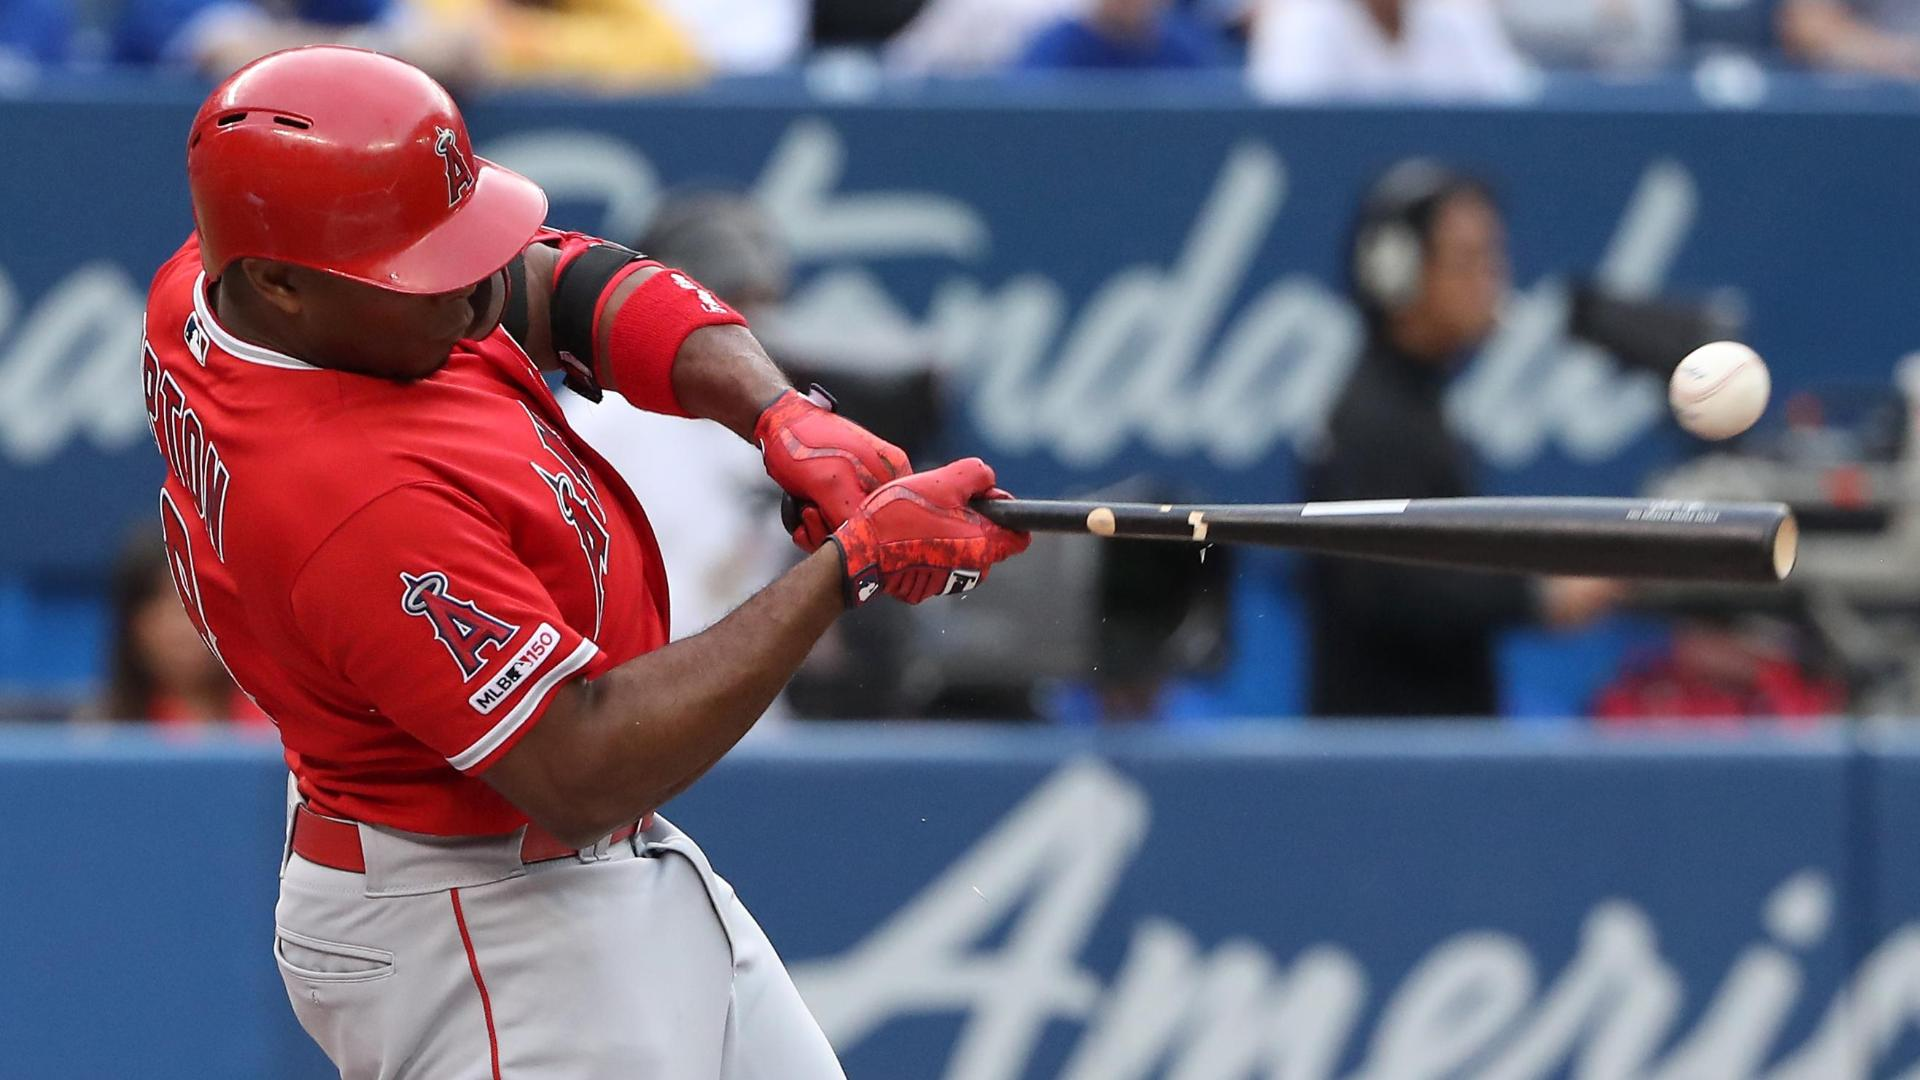 Upton homers in Angels' 7-run inning